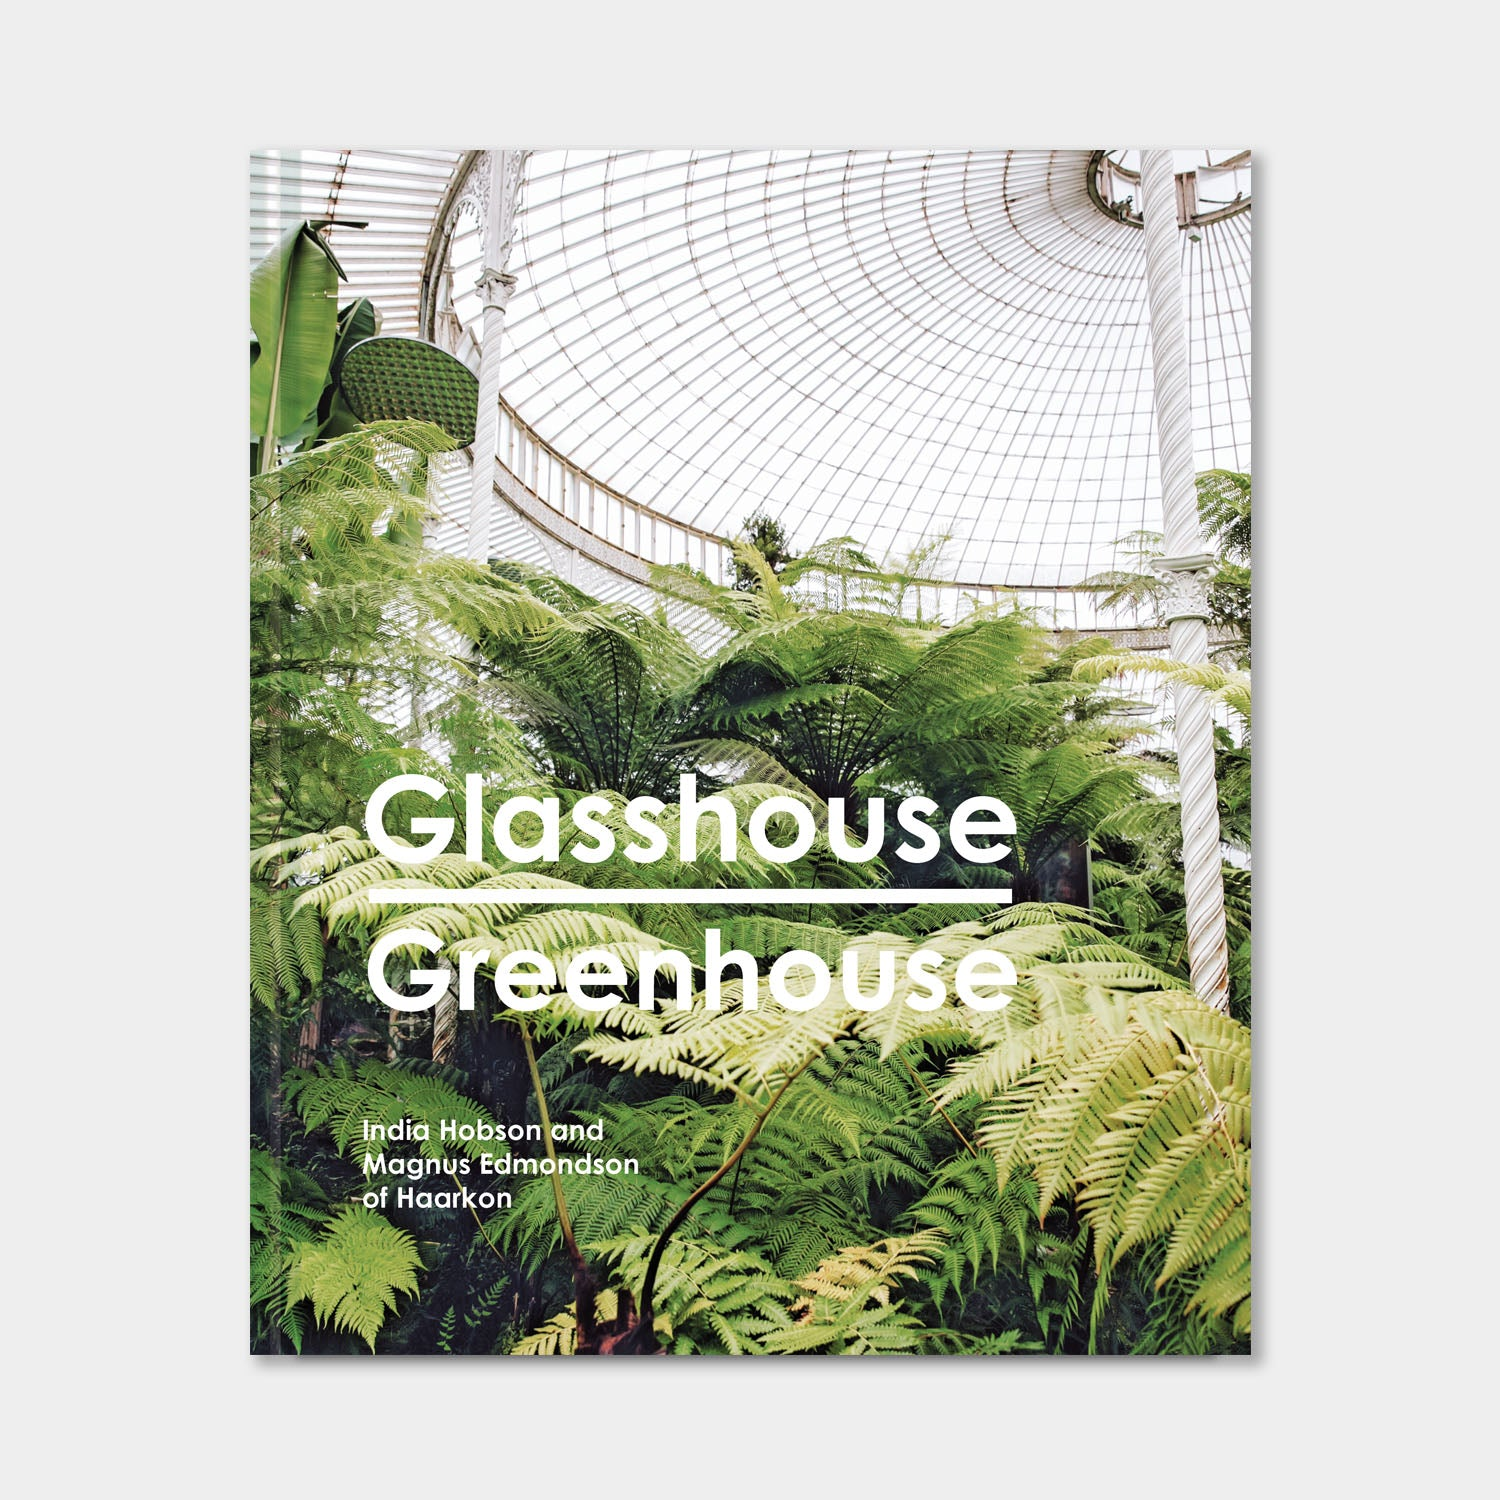 Glasshouse Greenhouse: Haarkon's world tour of amazing botanical spaces